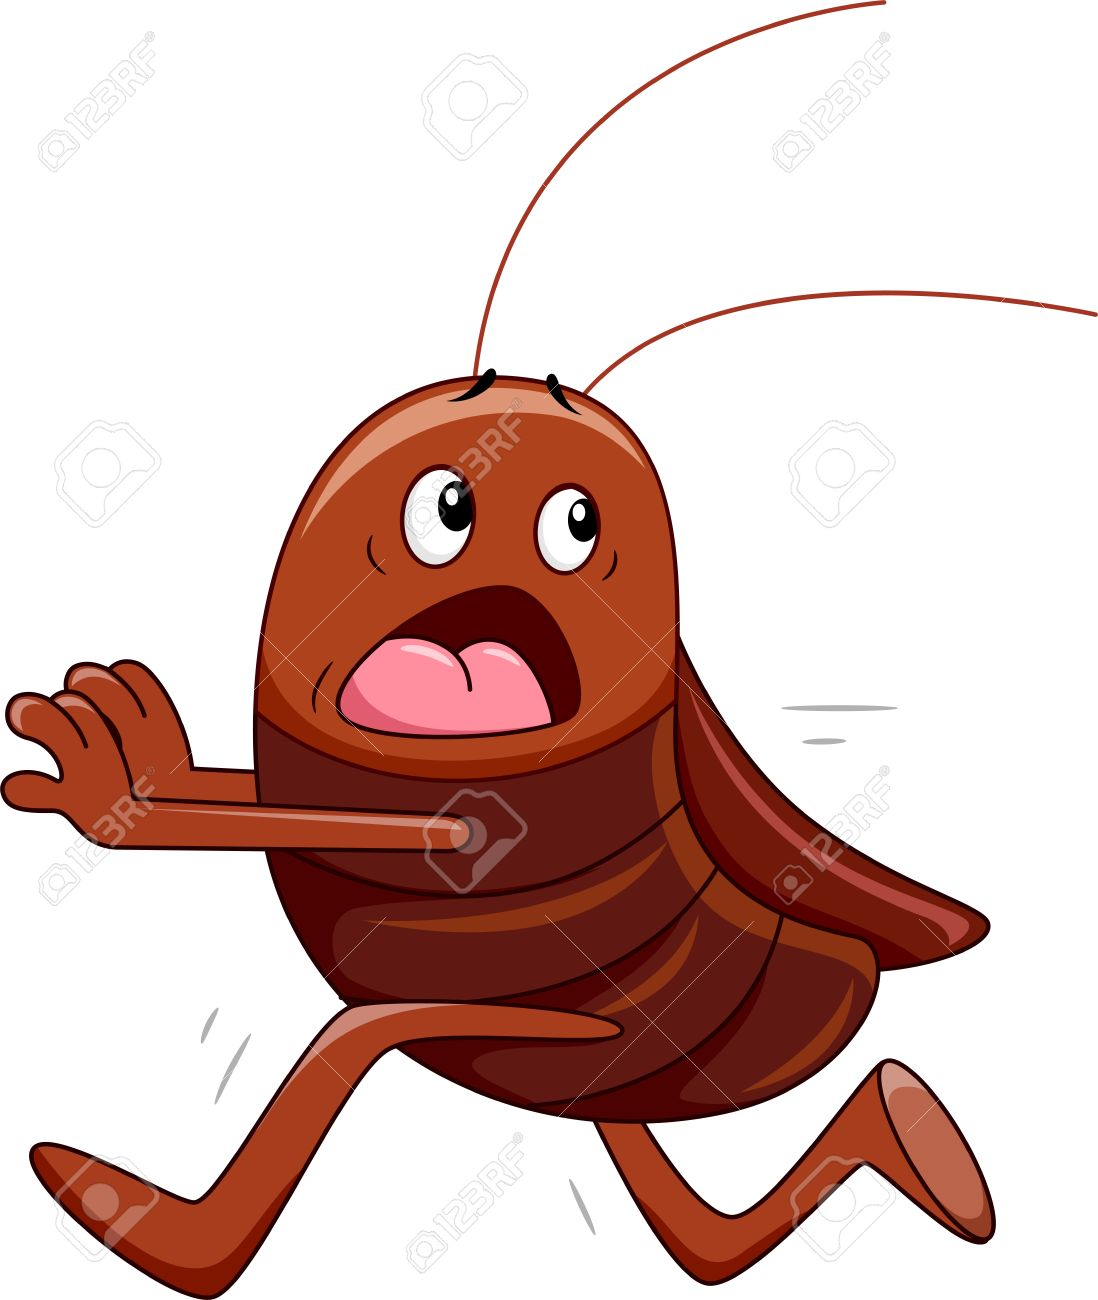 1098x1300 Cockroach clipart animated